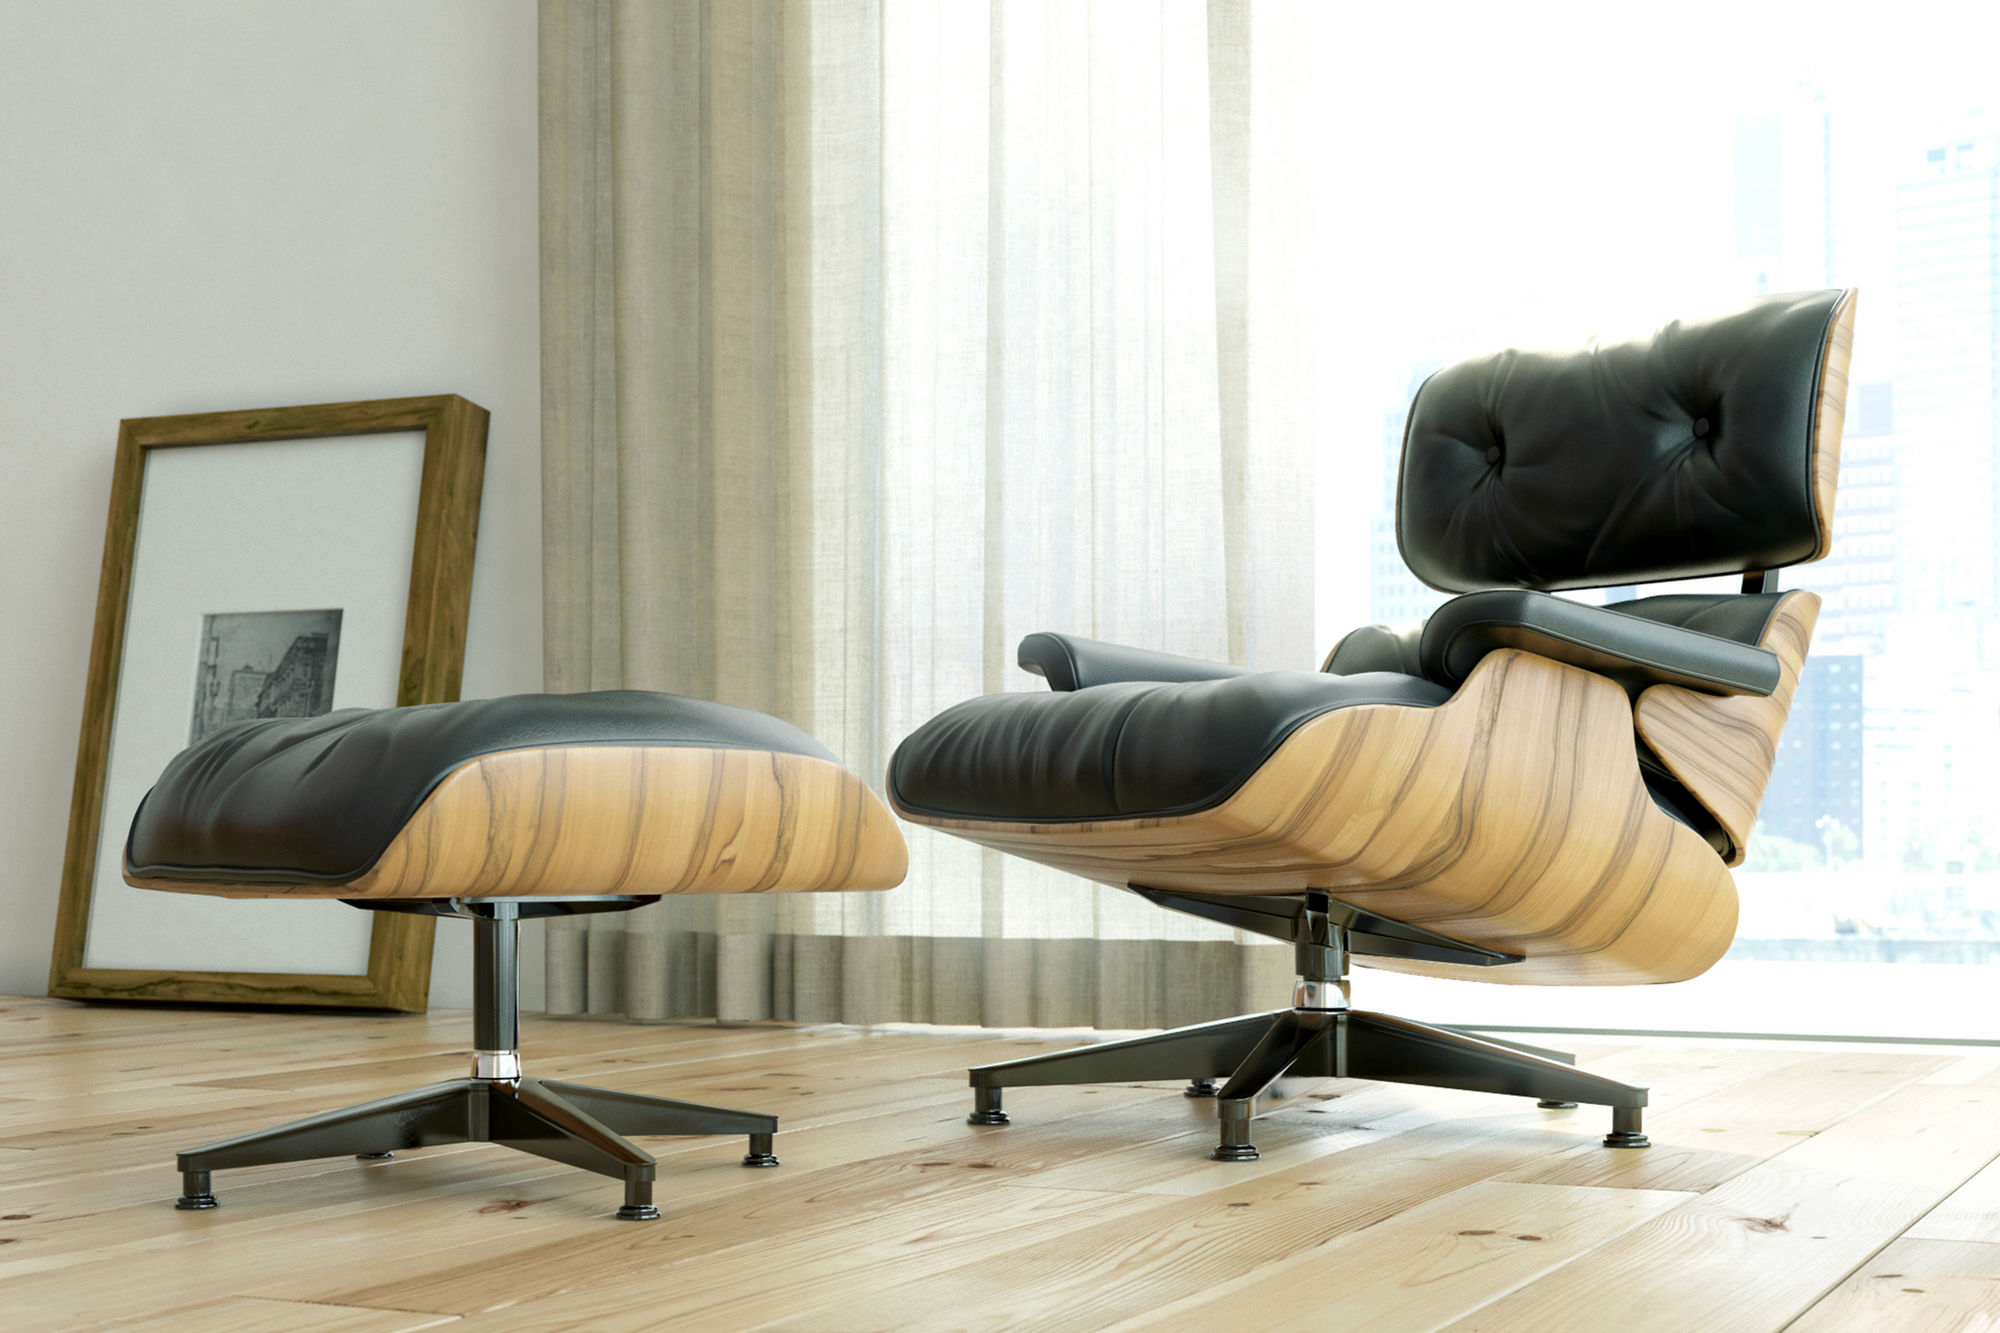 Chair Lounge Eames Lounge Chair The Freshest